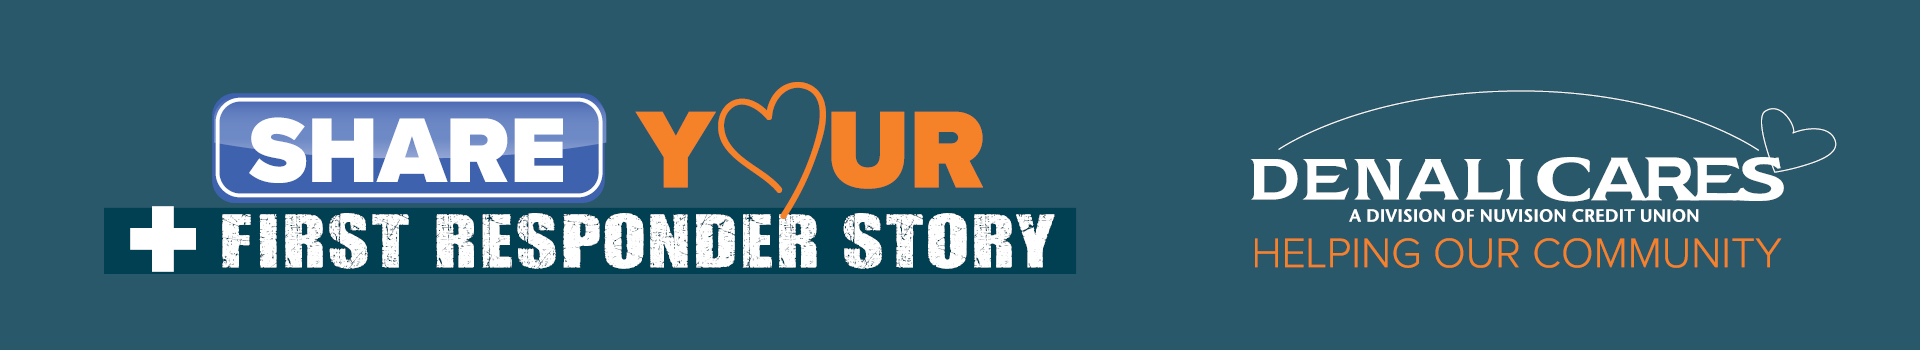 """Banner with a navy blue backdrop with orange and white stylized that says """"Share Your First Responder Story"""" with a DenaliCares logo on the right hand side."""